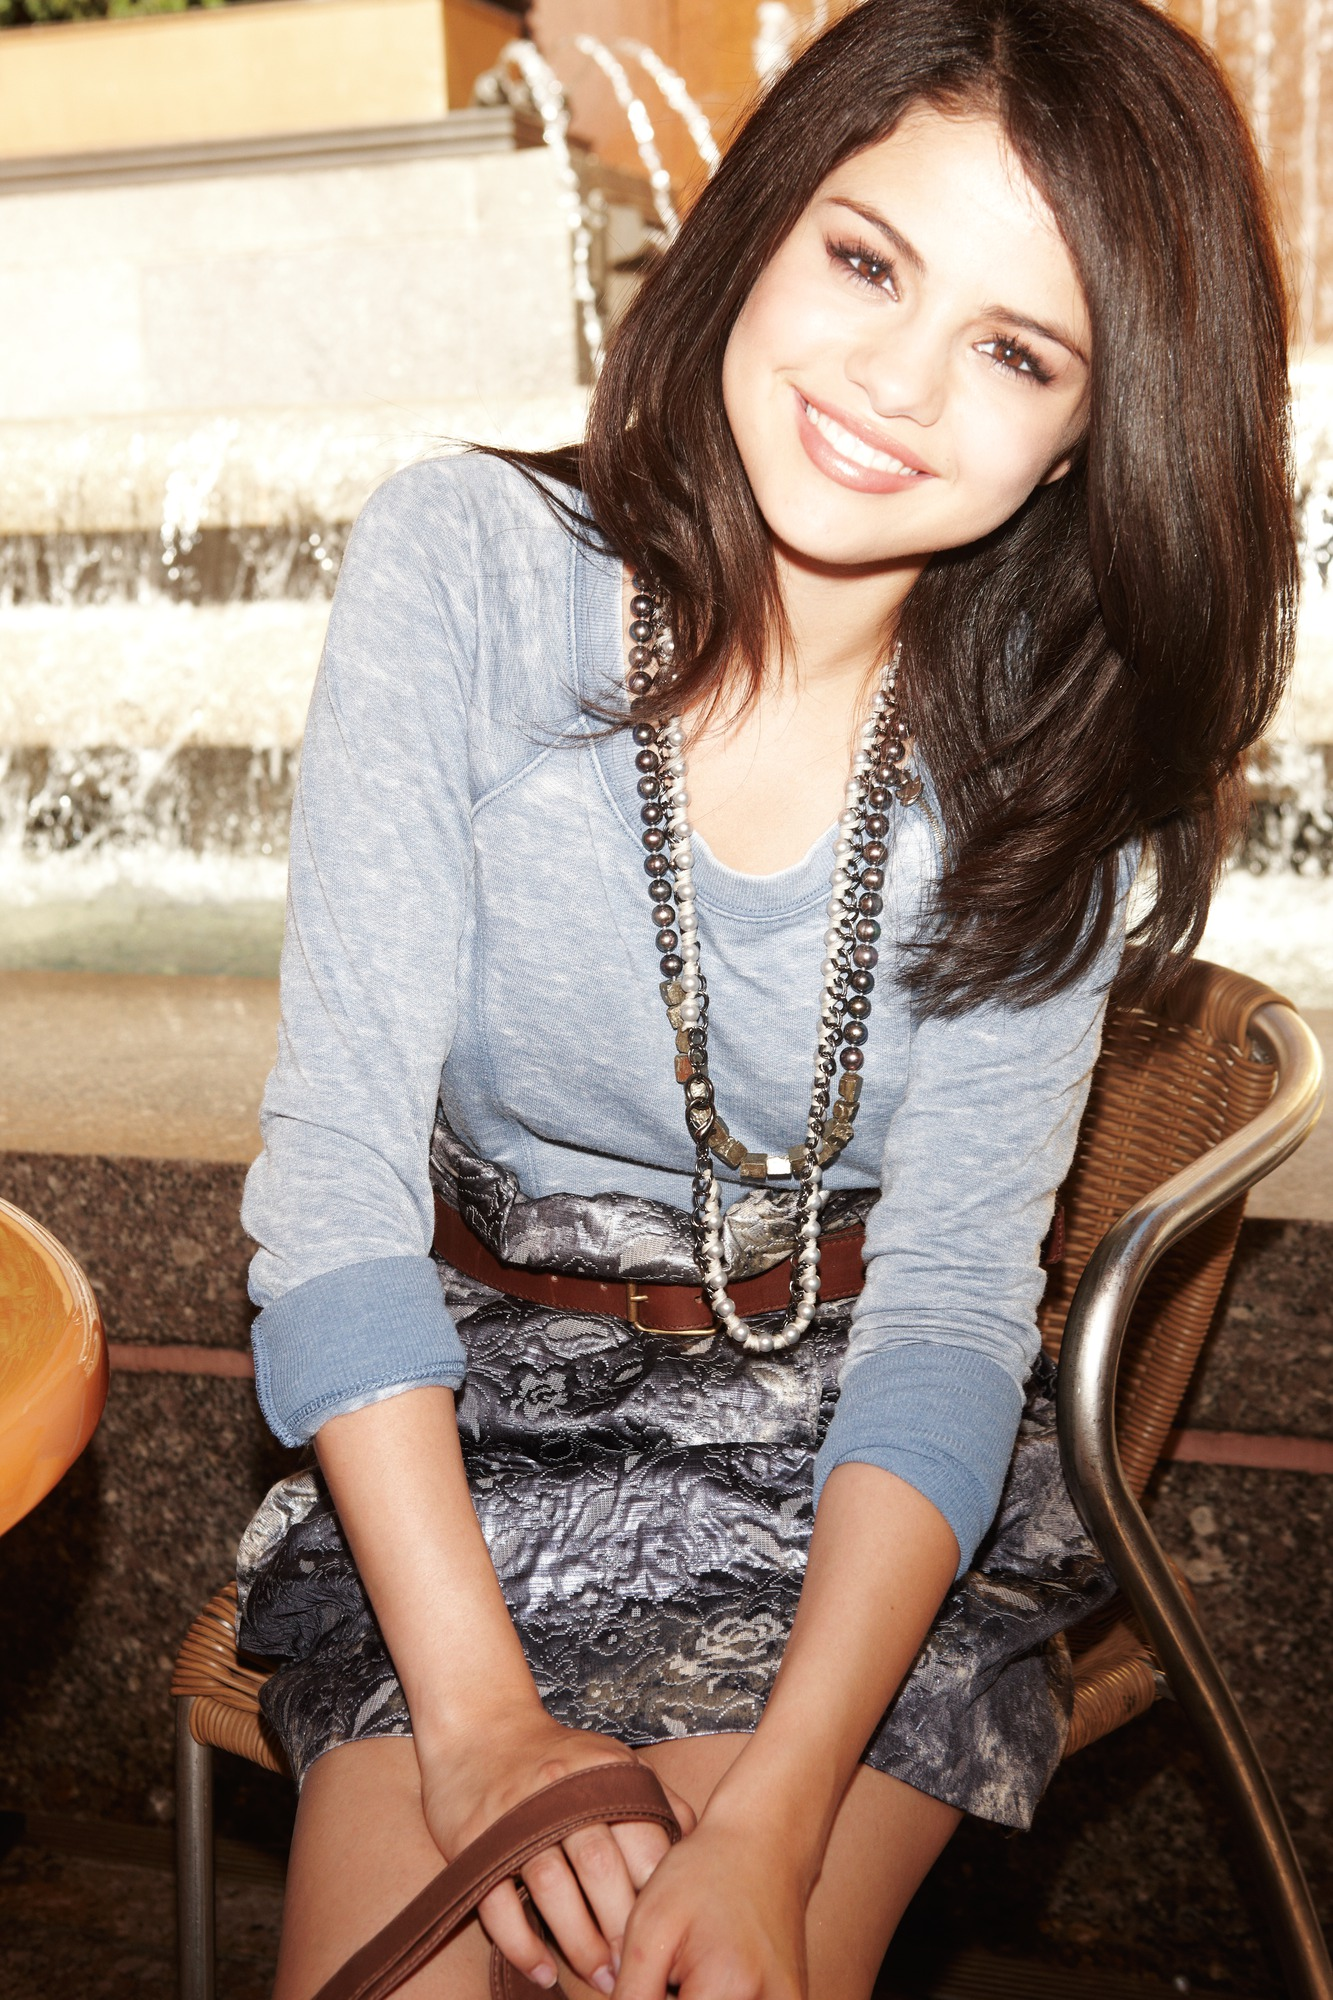 Teenvogue_selenagomez%200577.tif Wallpaper